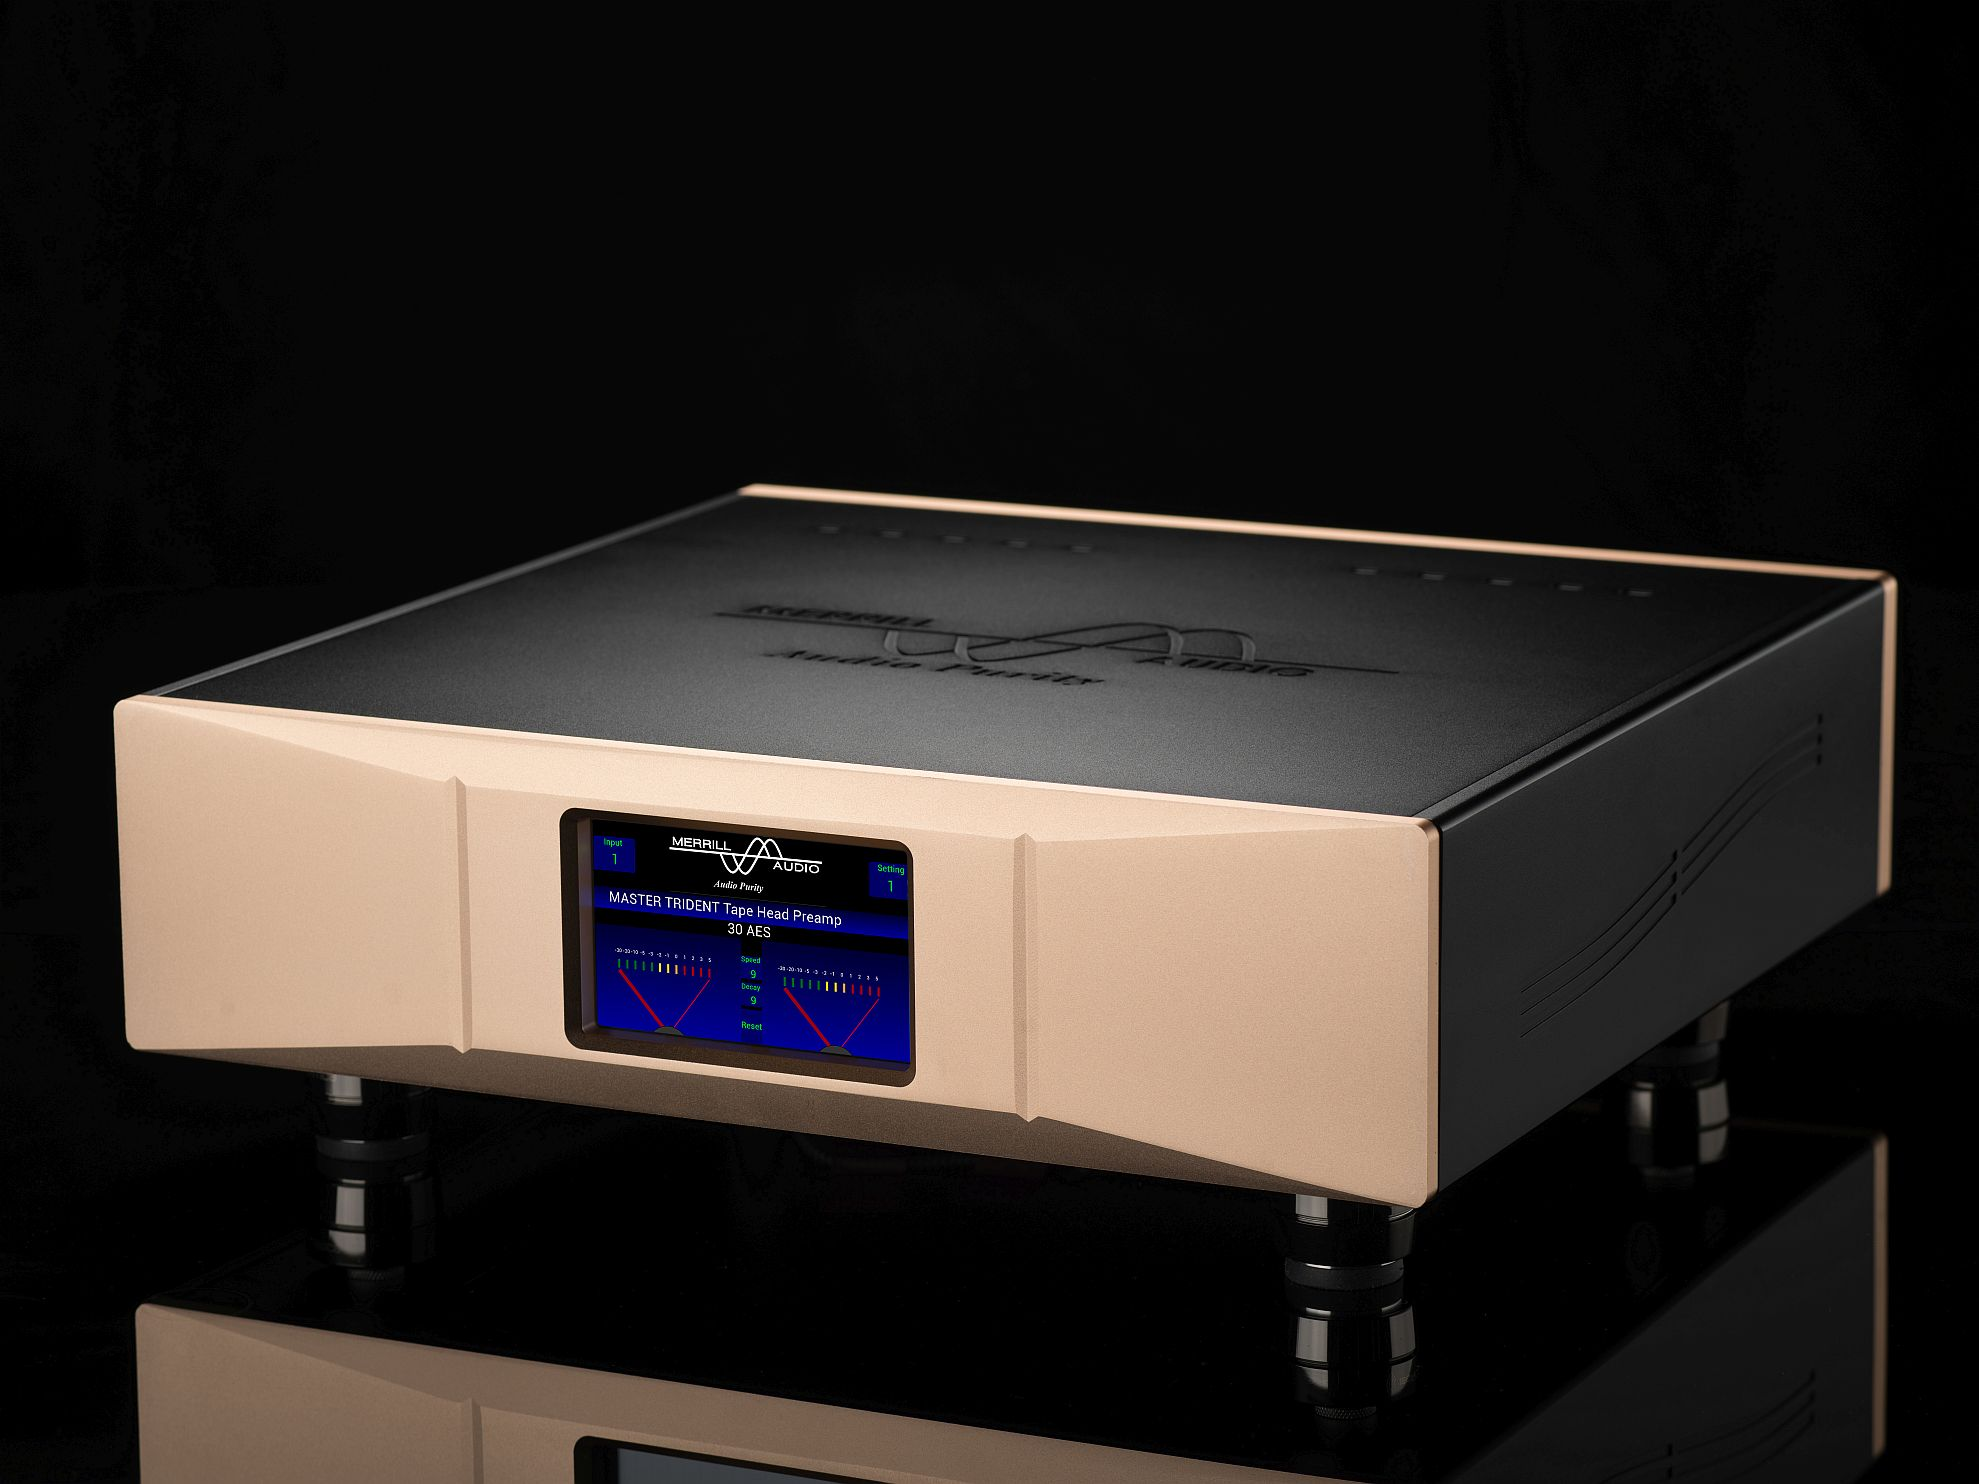 Master Trident Tapehead Preamp Rightfront 1